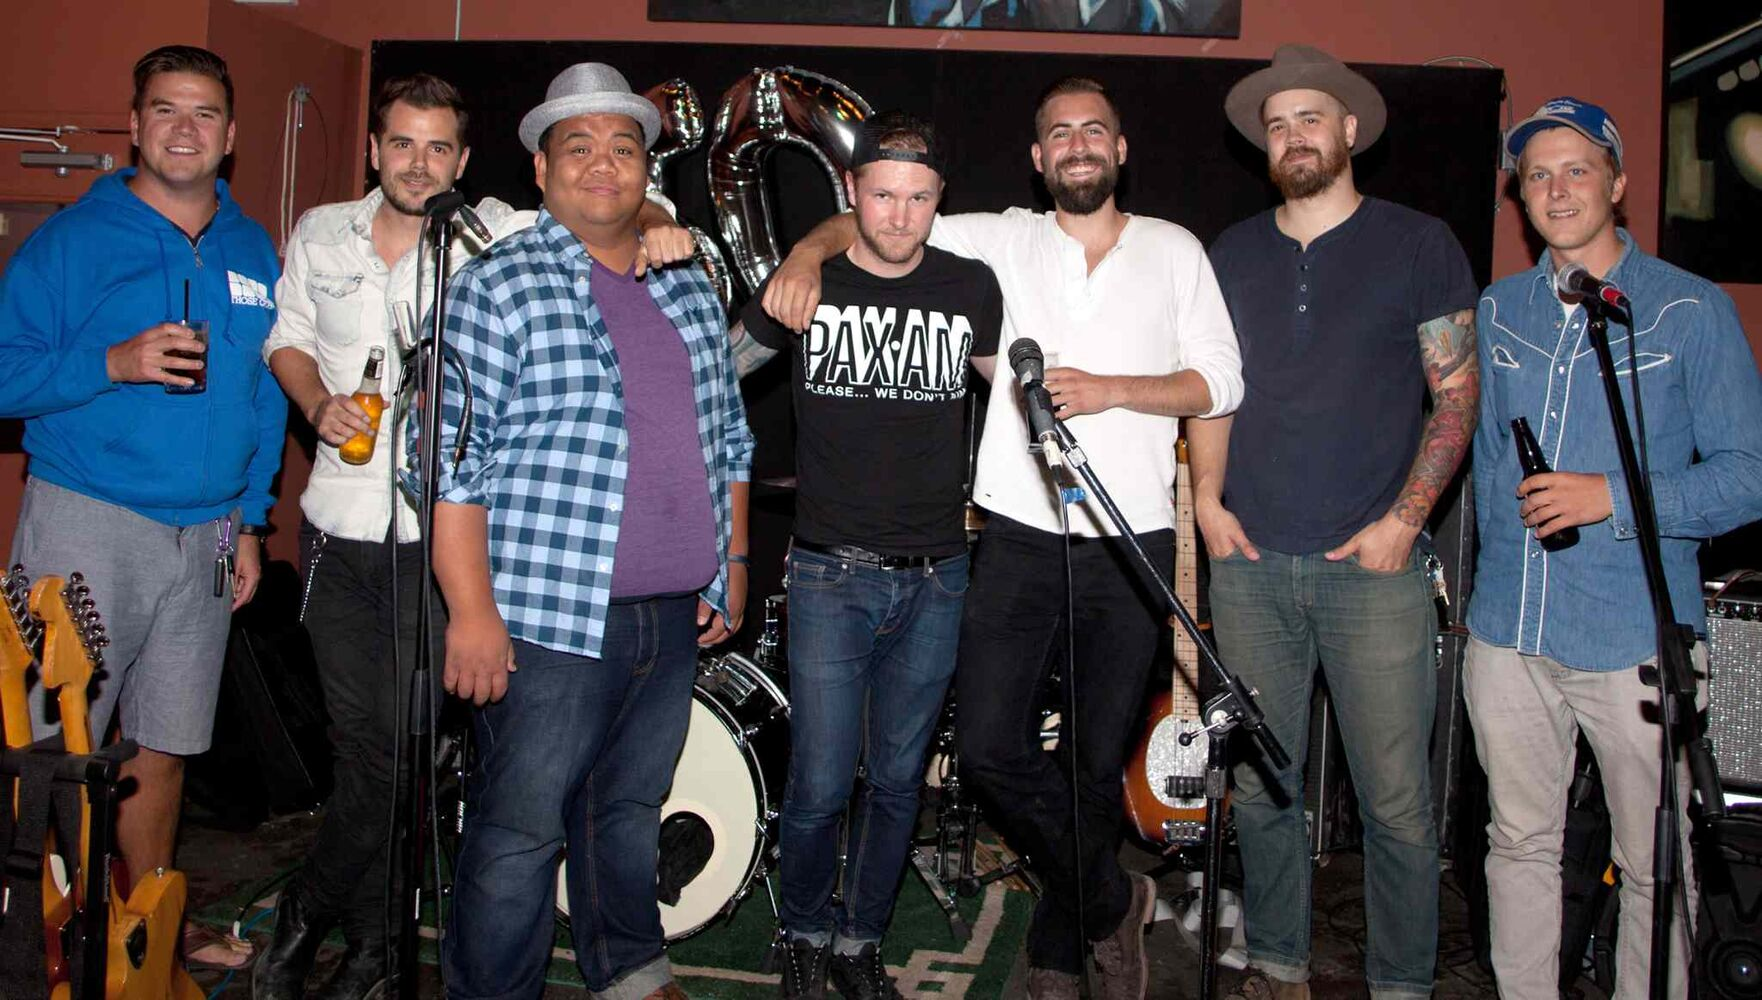 A surprise 50th birthday party for POP Sports & Entertainment's Dave Sherman was held Aug. 7, 2015 at Le Garage Café. Live entertainment was provided by Those Guys: Michael Engstrom (from left), Kyle Meyer, Bernie Pastorin, Jay Mymryk, Ryan McConnell, Jesse Meyer and Jason Robert Stanley. (JOHN JOHNSTON / WINNIPEG FREE PRESS)